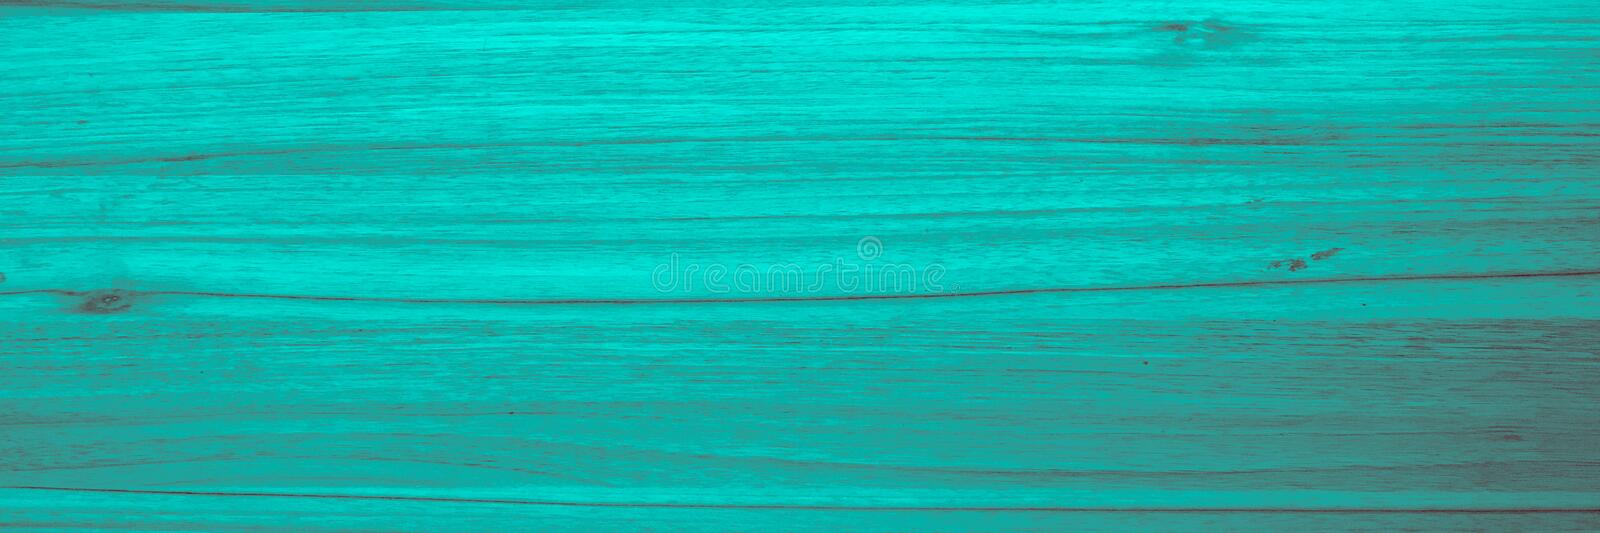 Green wood texture, light wooden abstract background stock photography